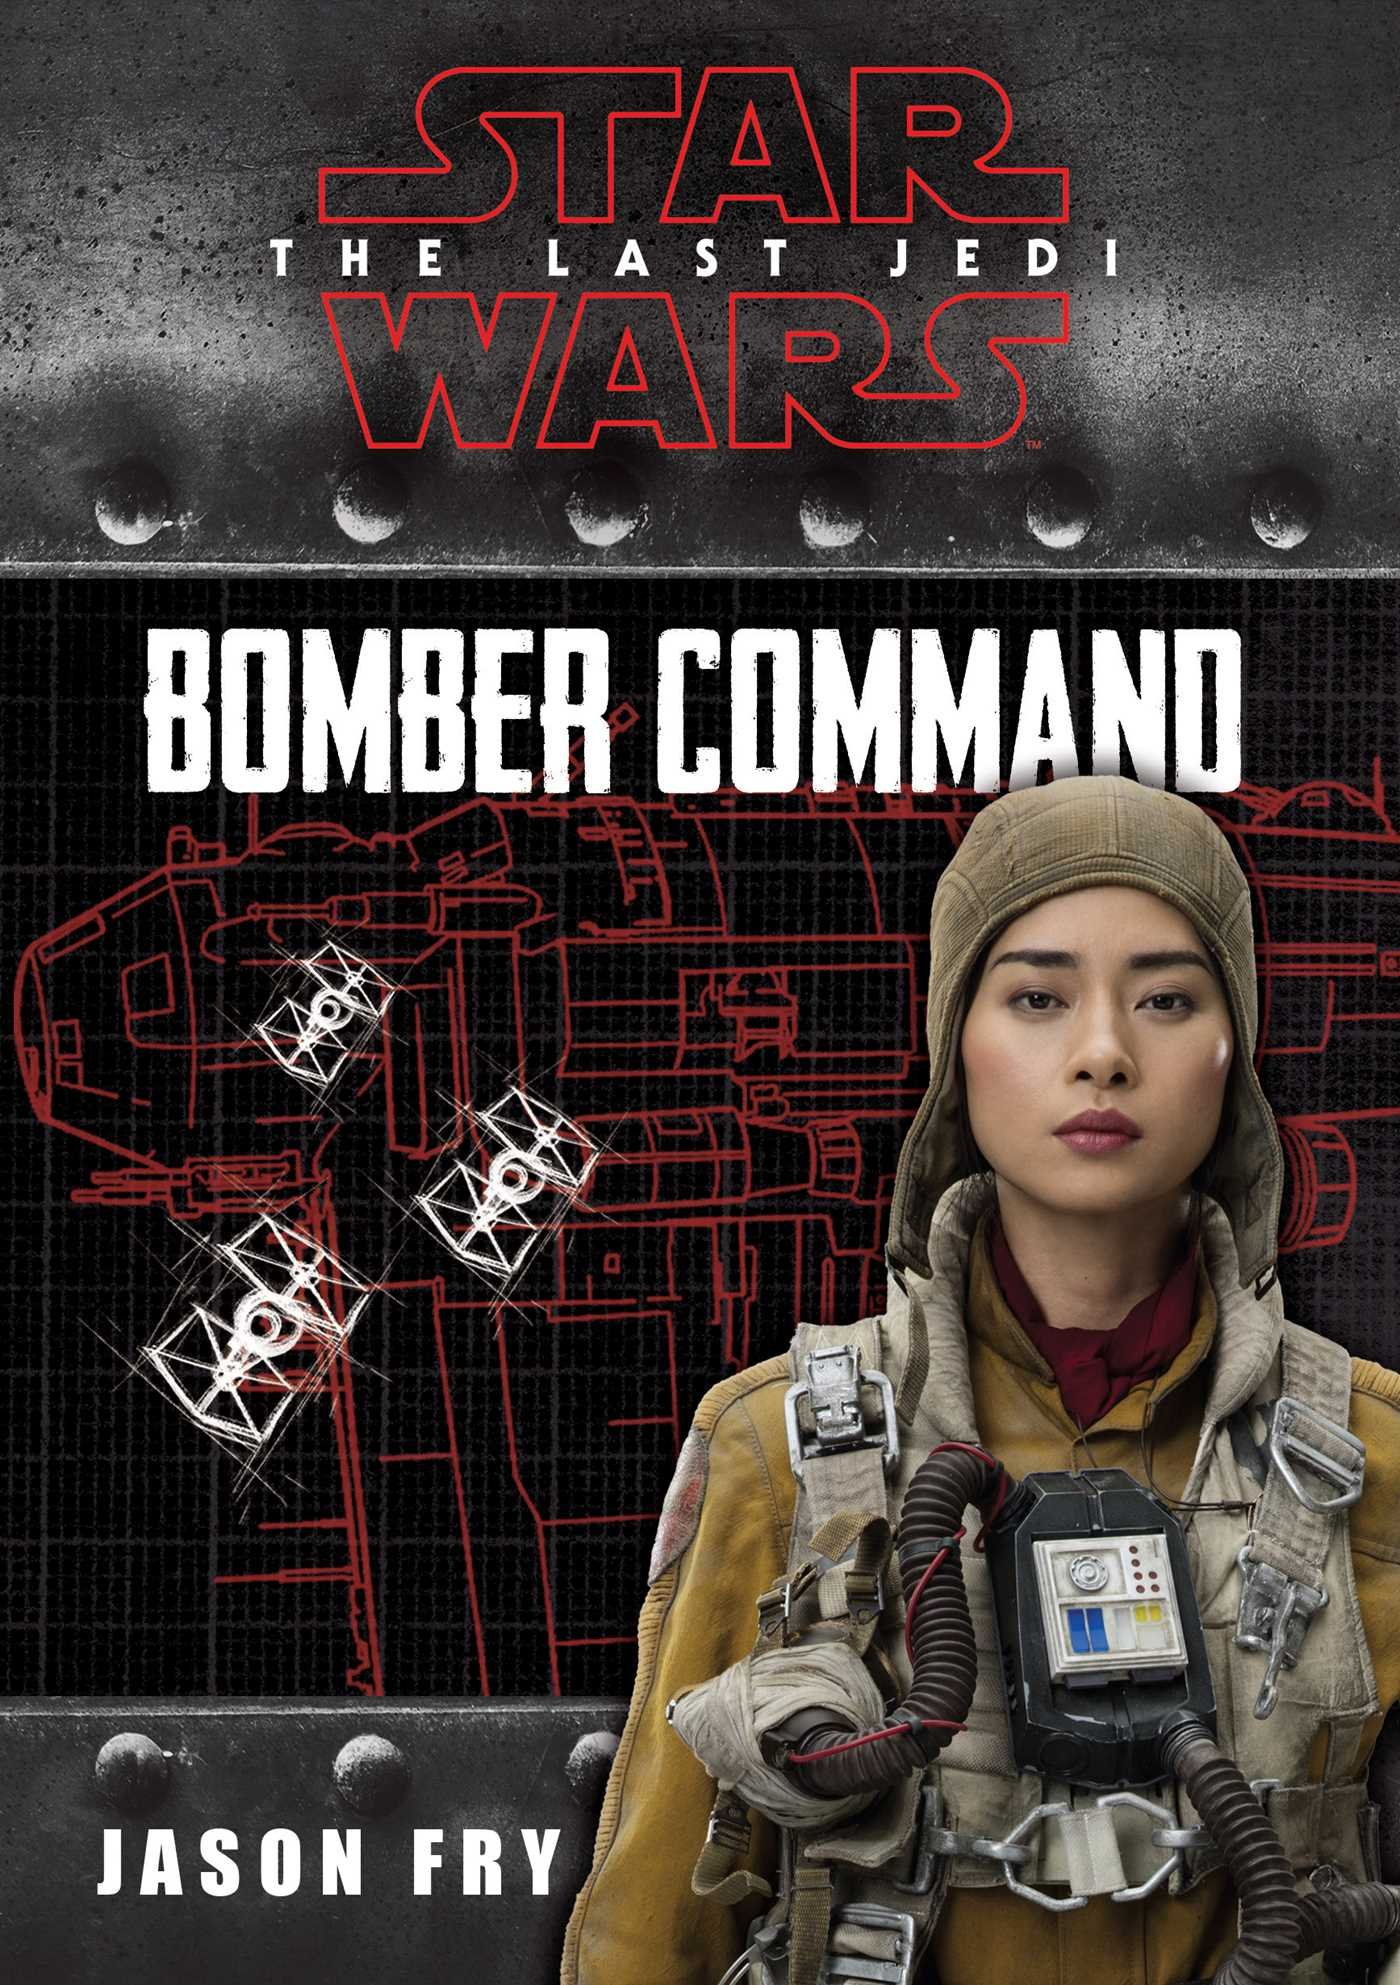 Star Wars The Last Jedi: Bomber Command